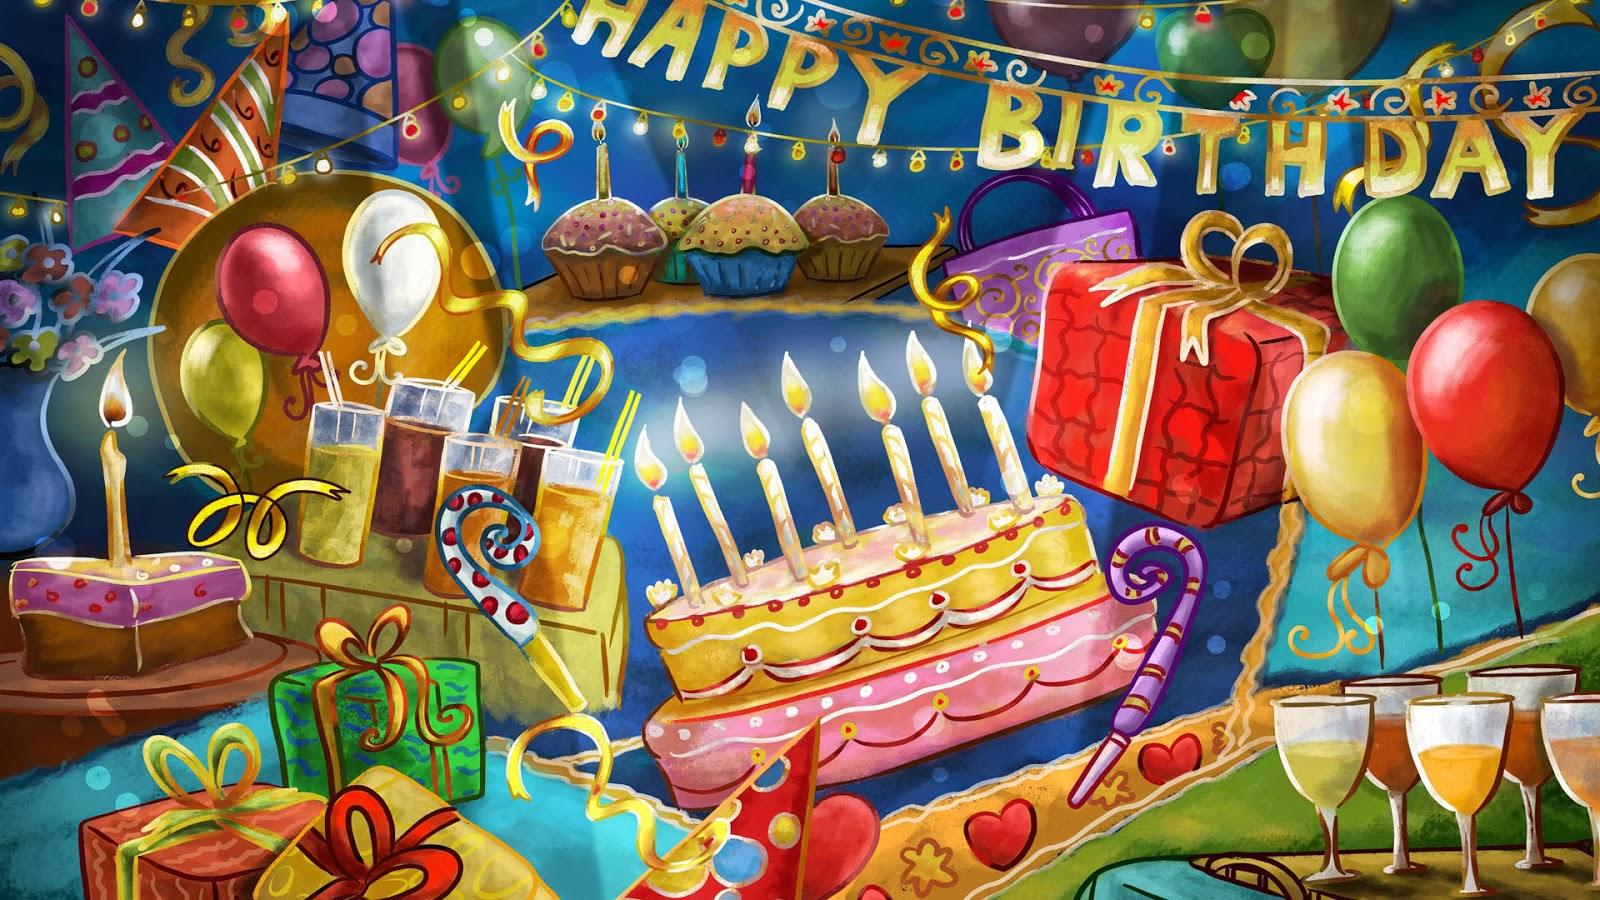 21+ Editing Birthday Background Images Hd 1080P Free Download Images